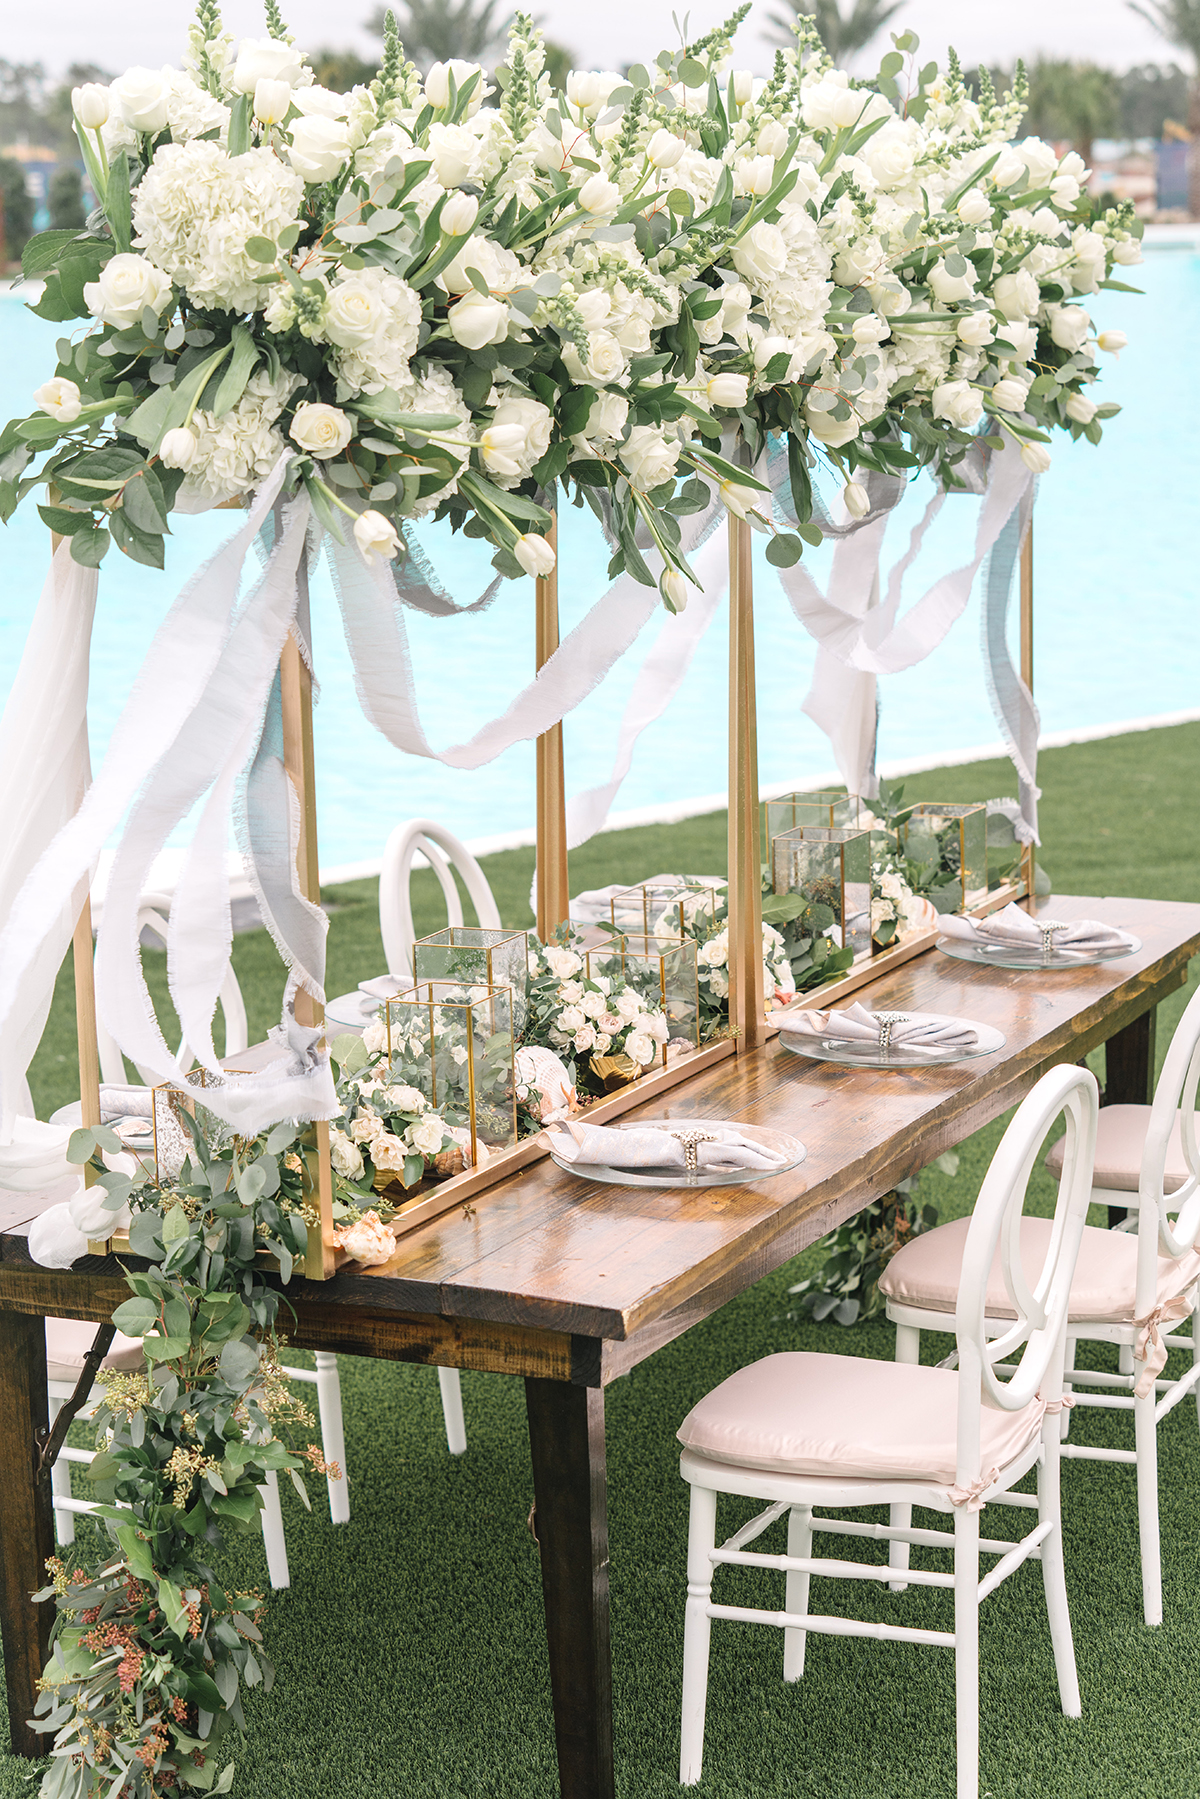 upscale beachy wedding table and decor